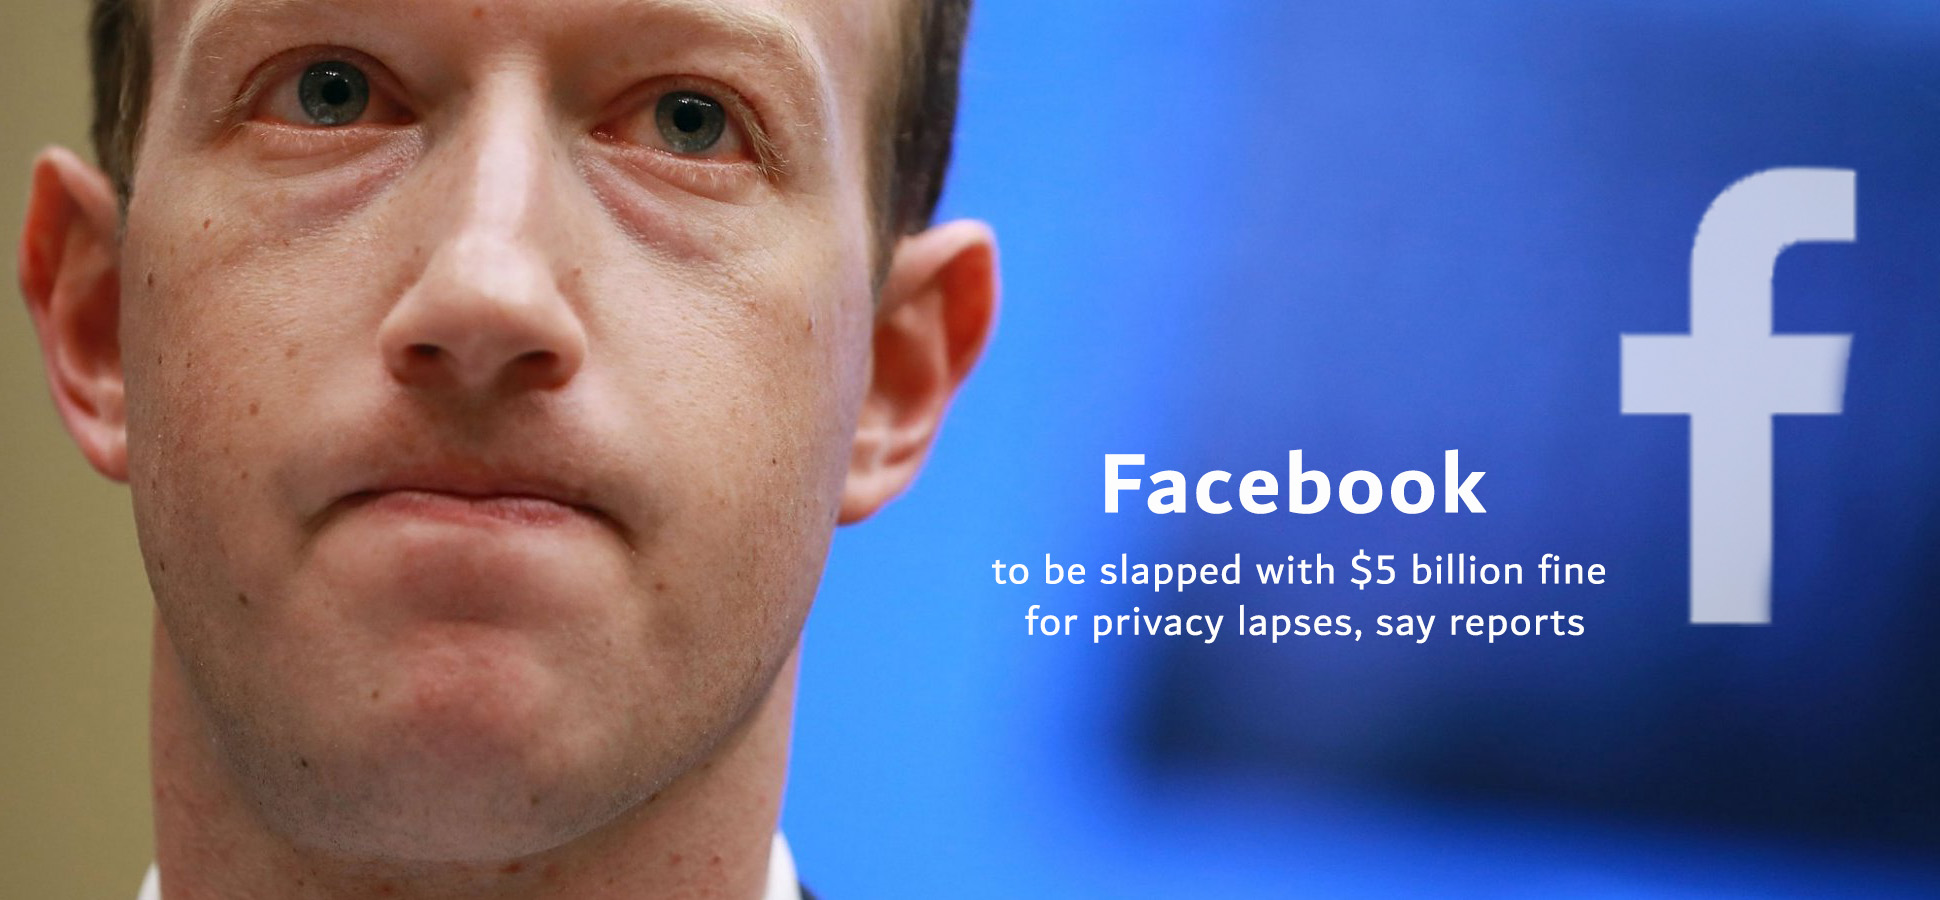 $5 billion Fined to Facebook by FTC for Privacy Lapses